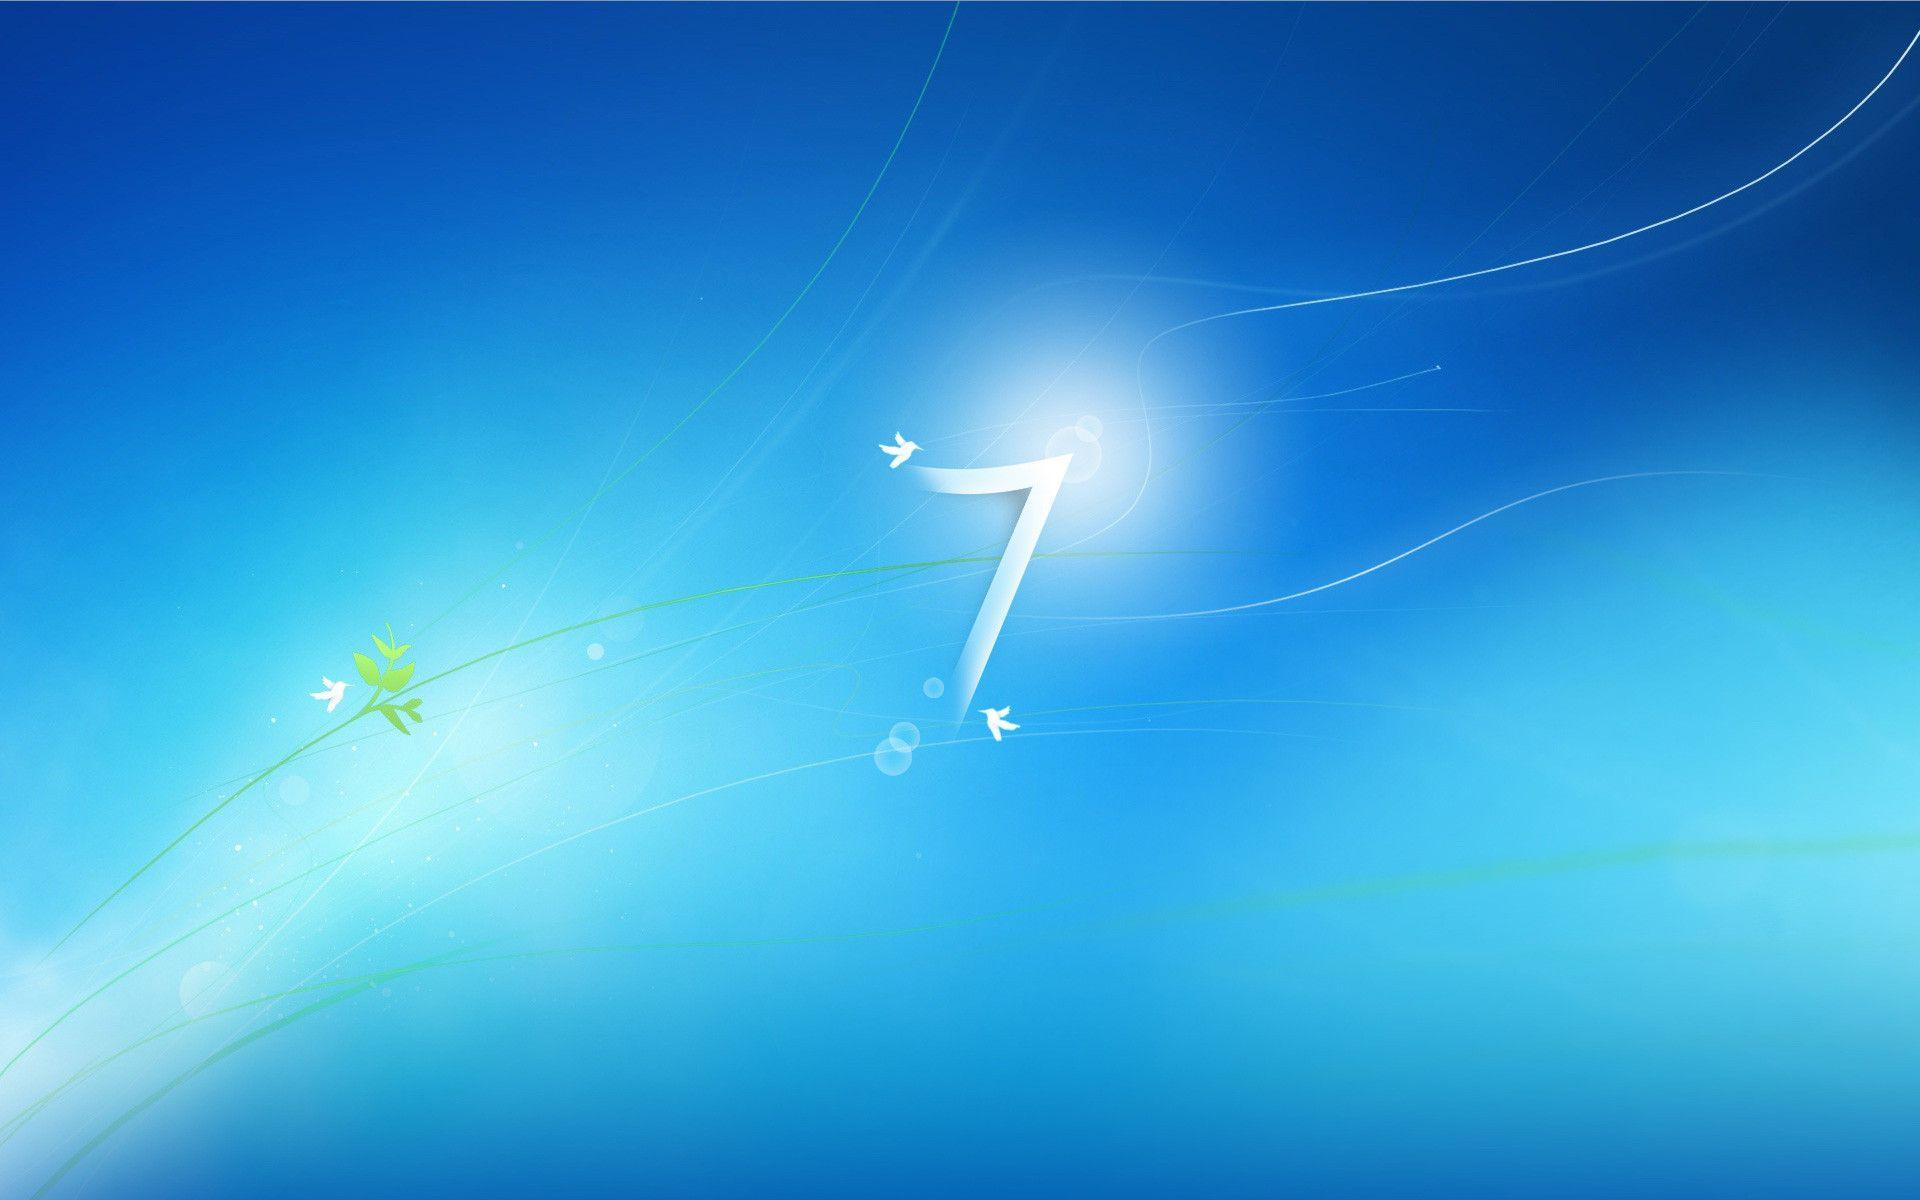 ikaros windows 7 wallpaper - photo #10